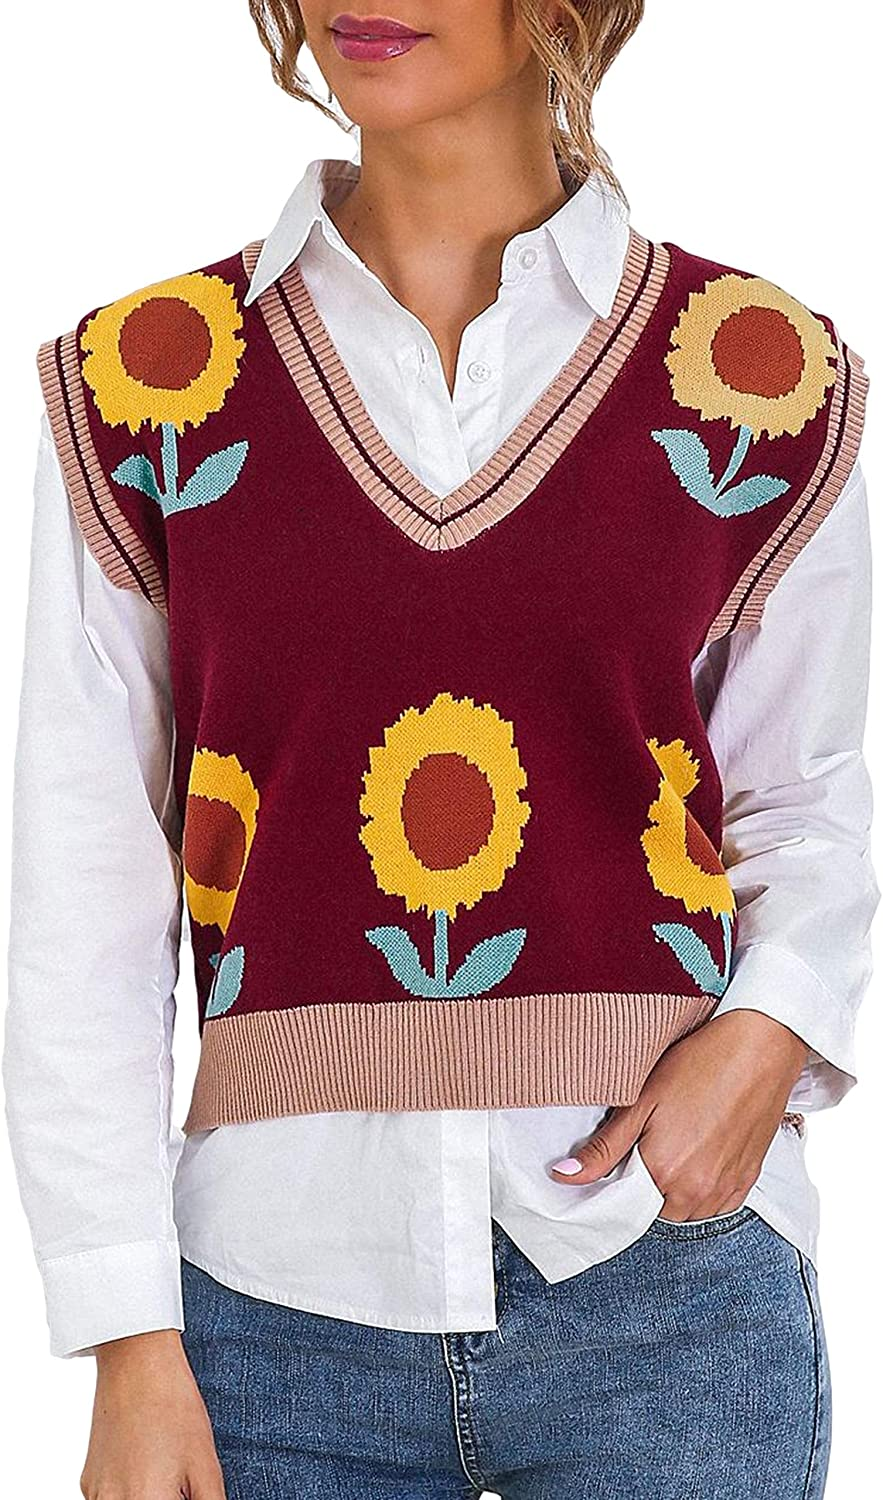 Uaneo Womens Knit Printed V Neck Sleeveless Casual Pullover Sweater Vests(Red-One Size)